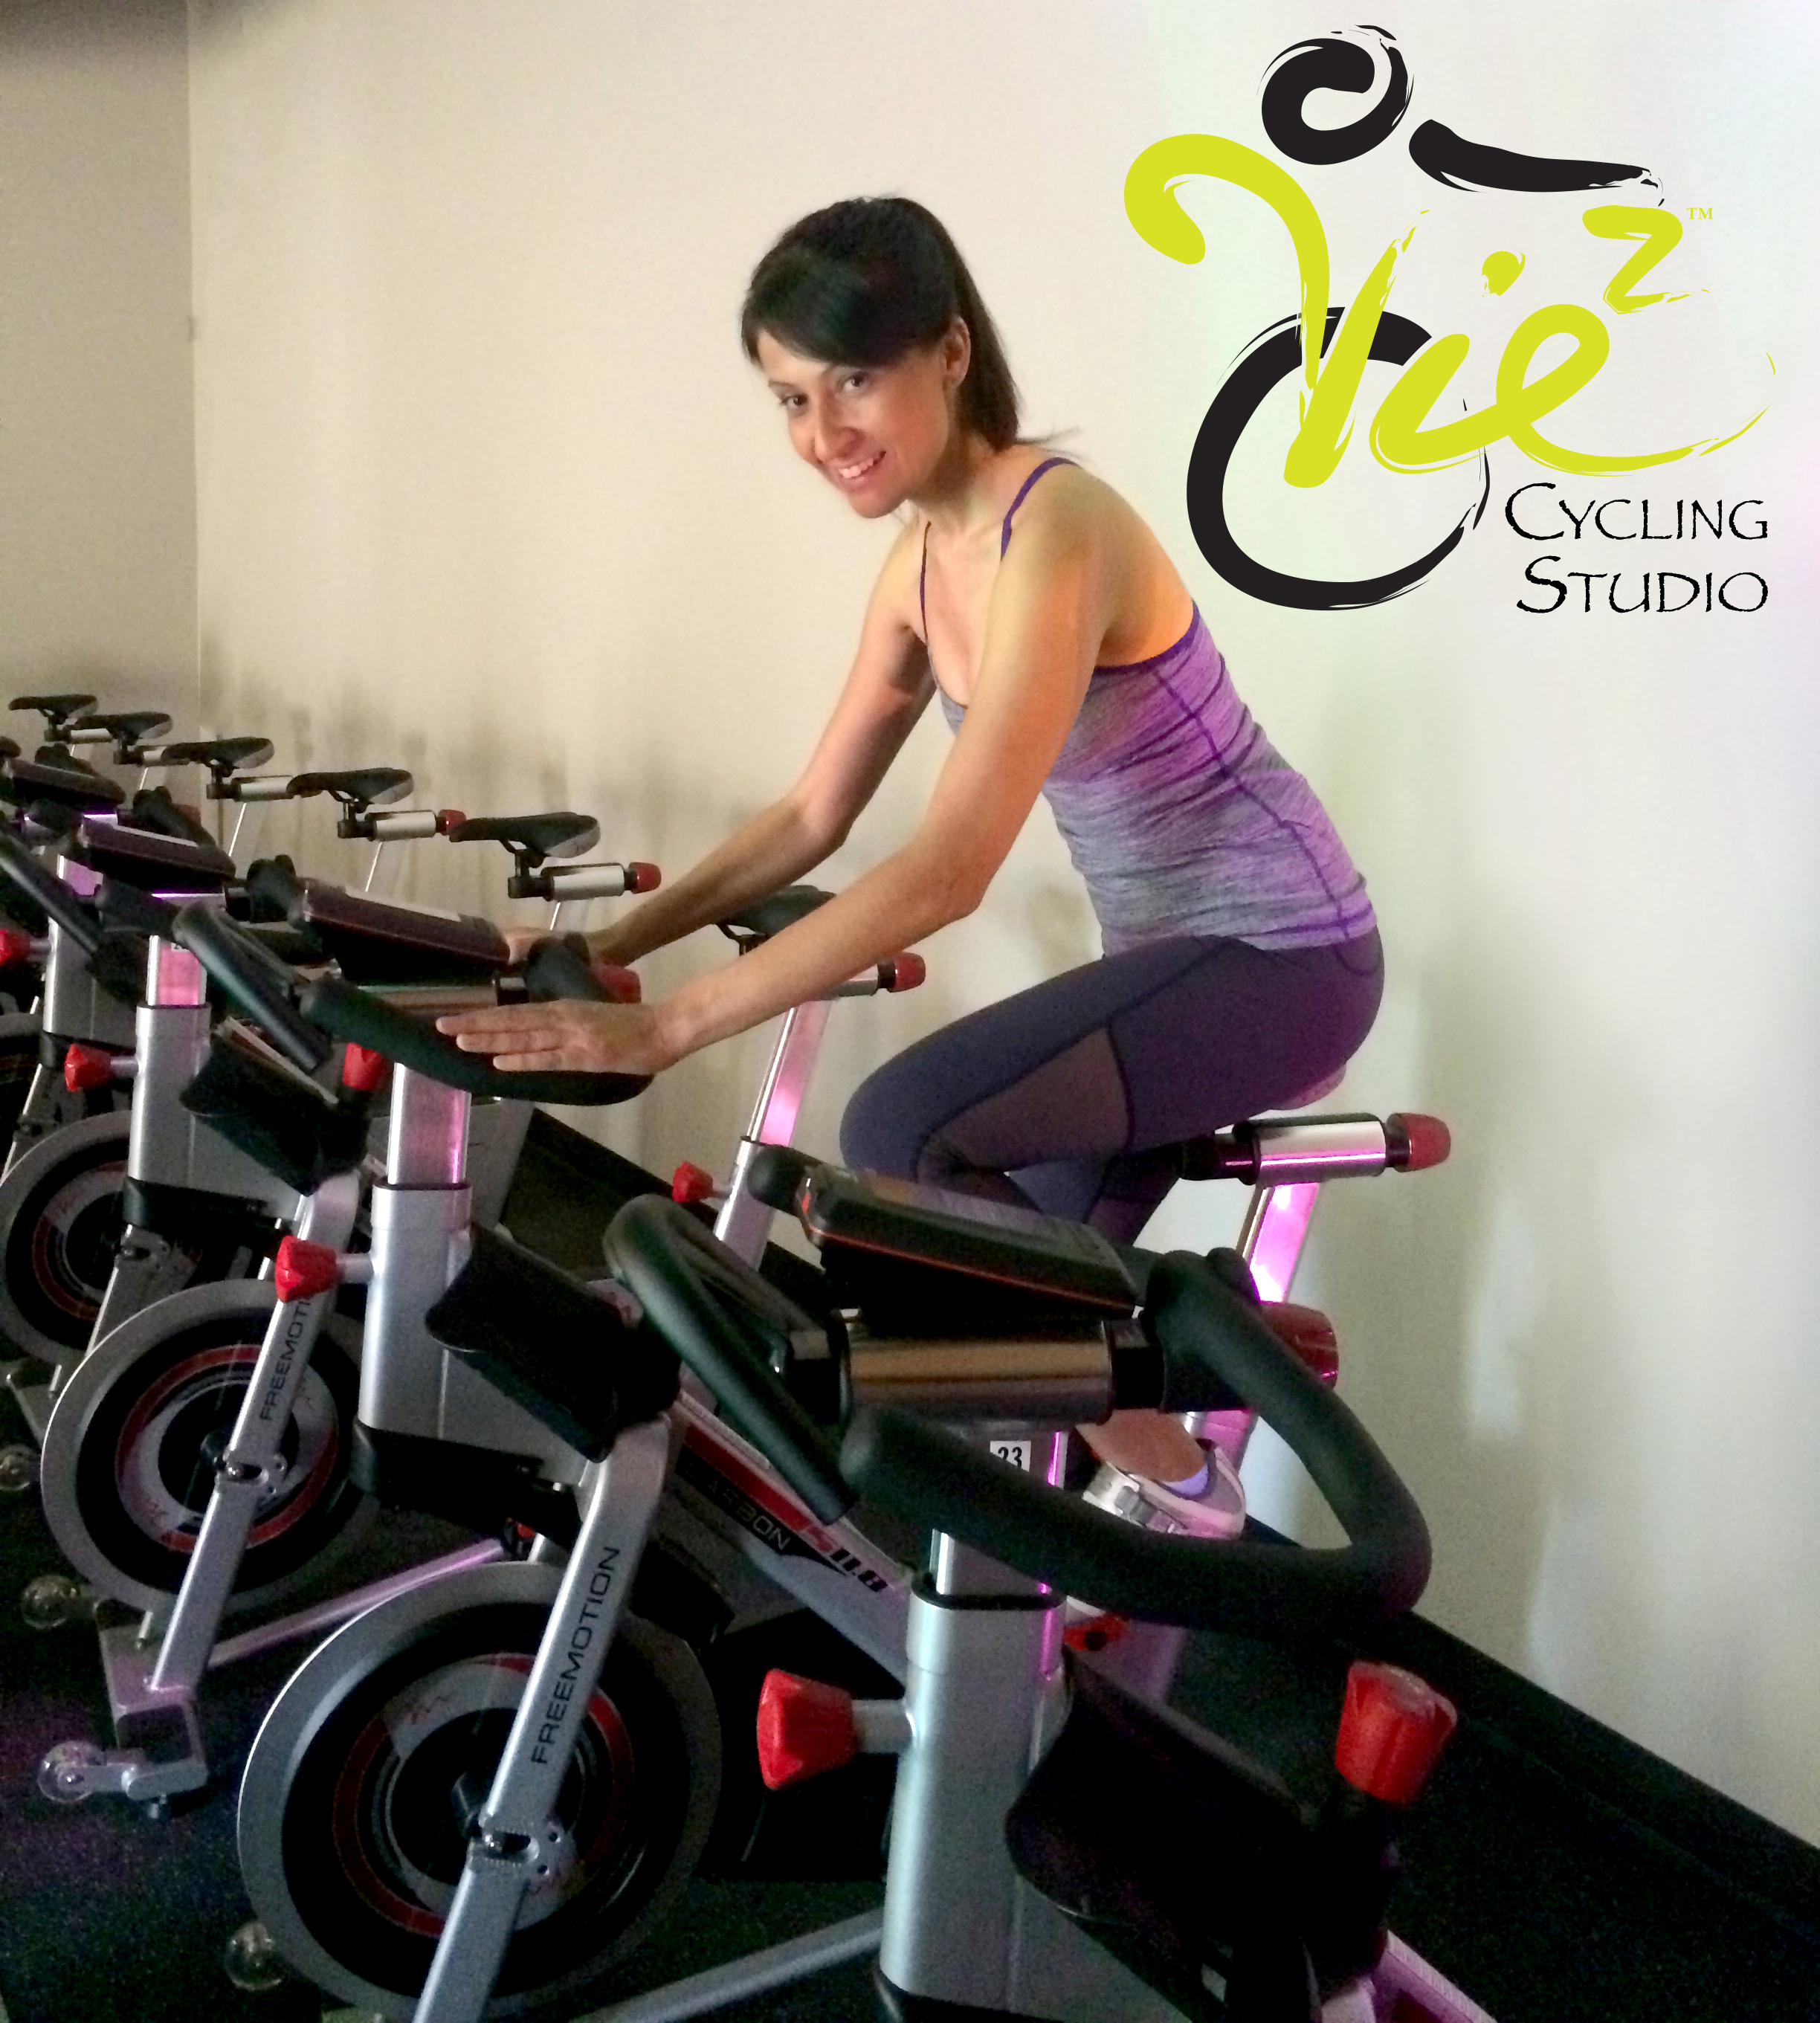 Selma at Vie 2 Cycling Studio - the cycling studio she manages. Nursing skills are very transferable.